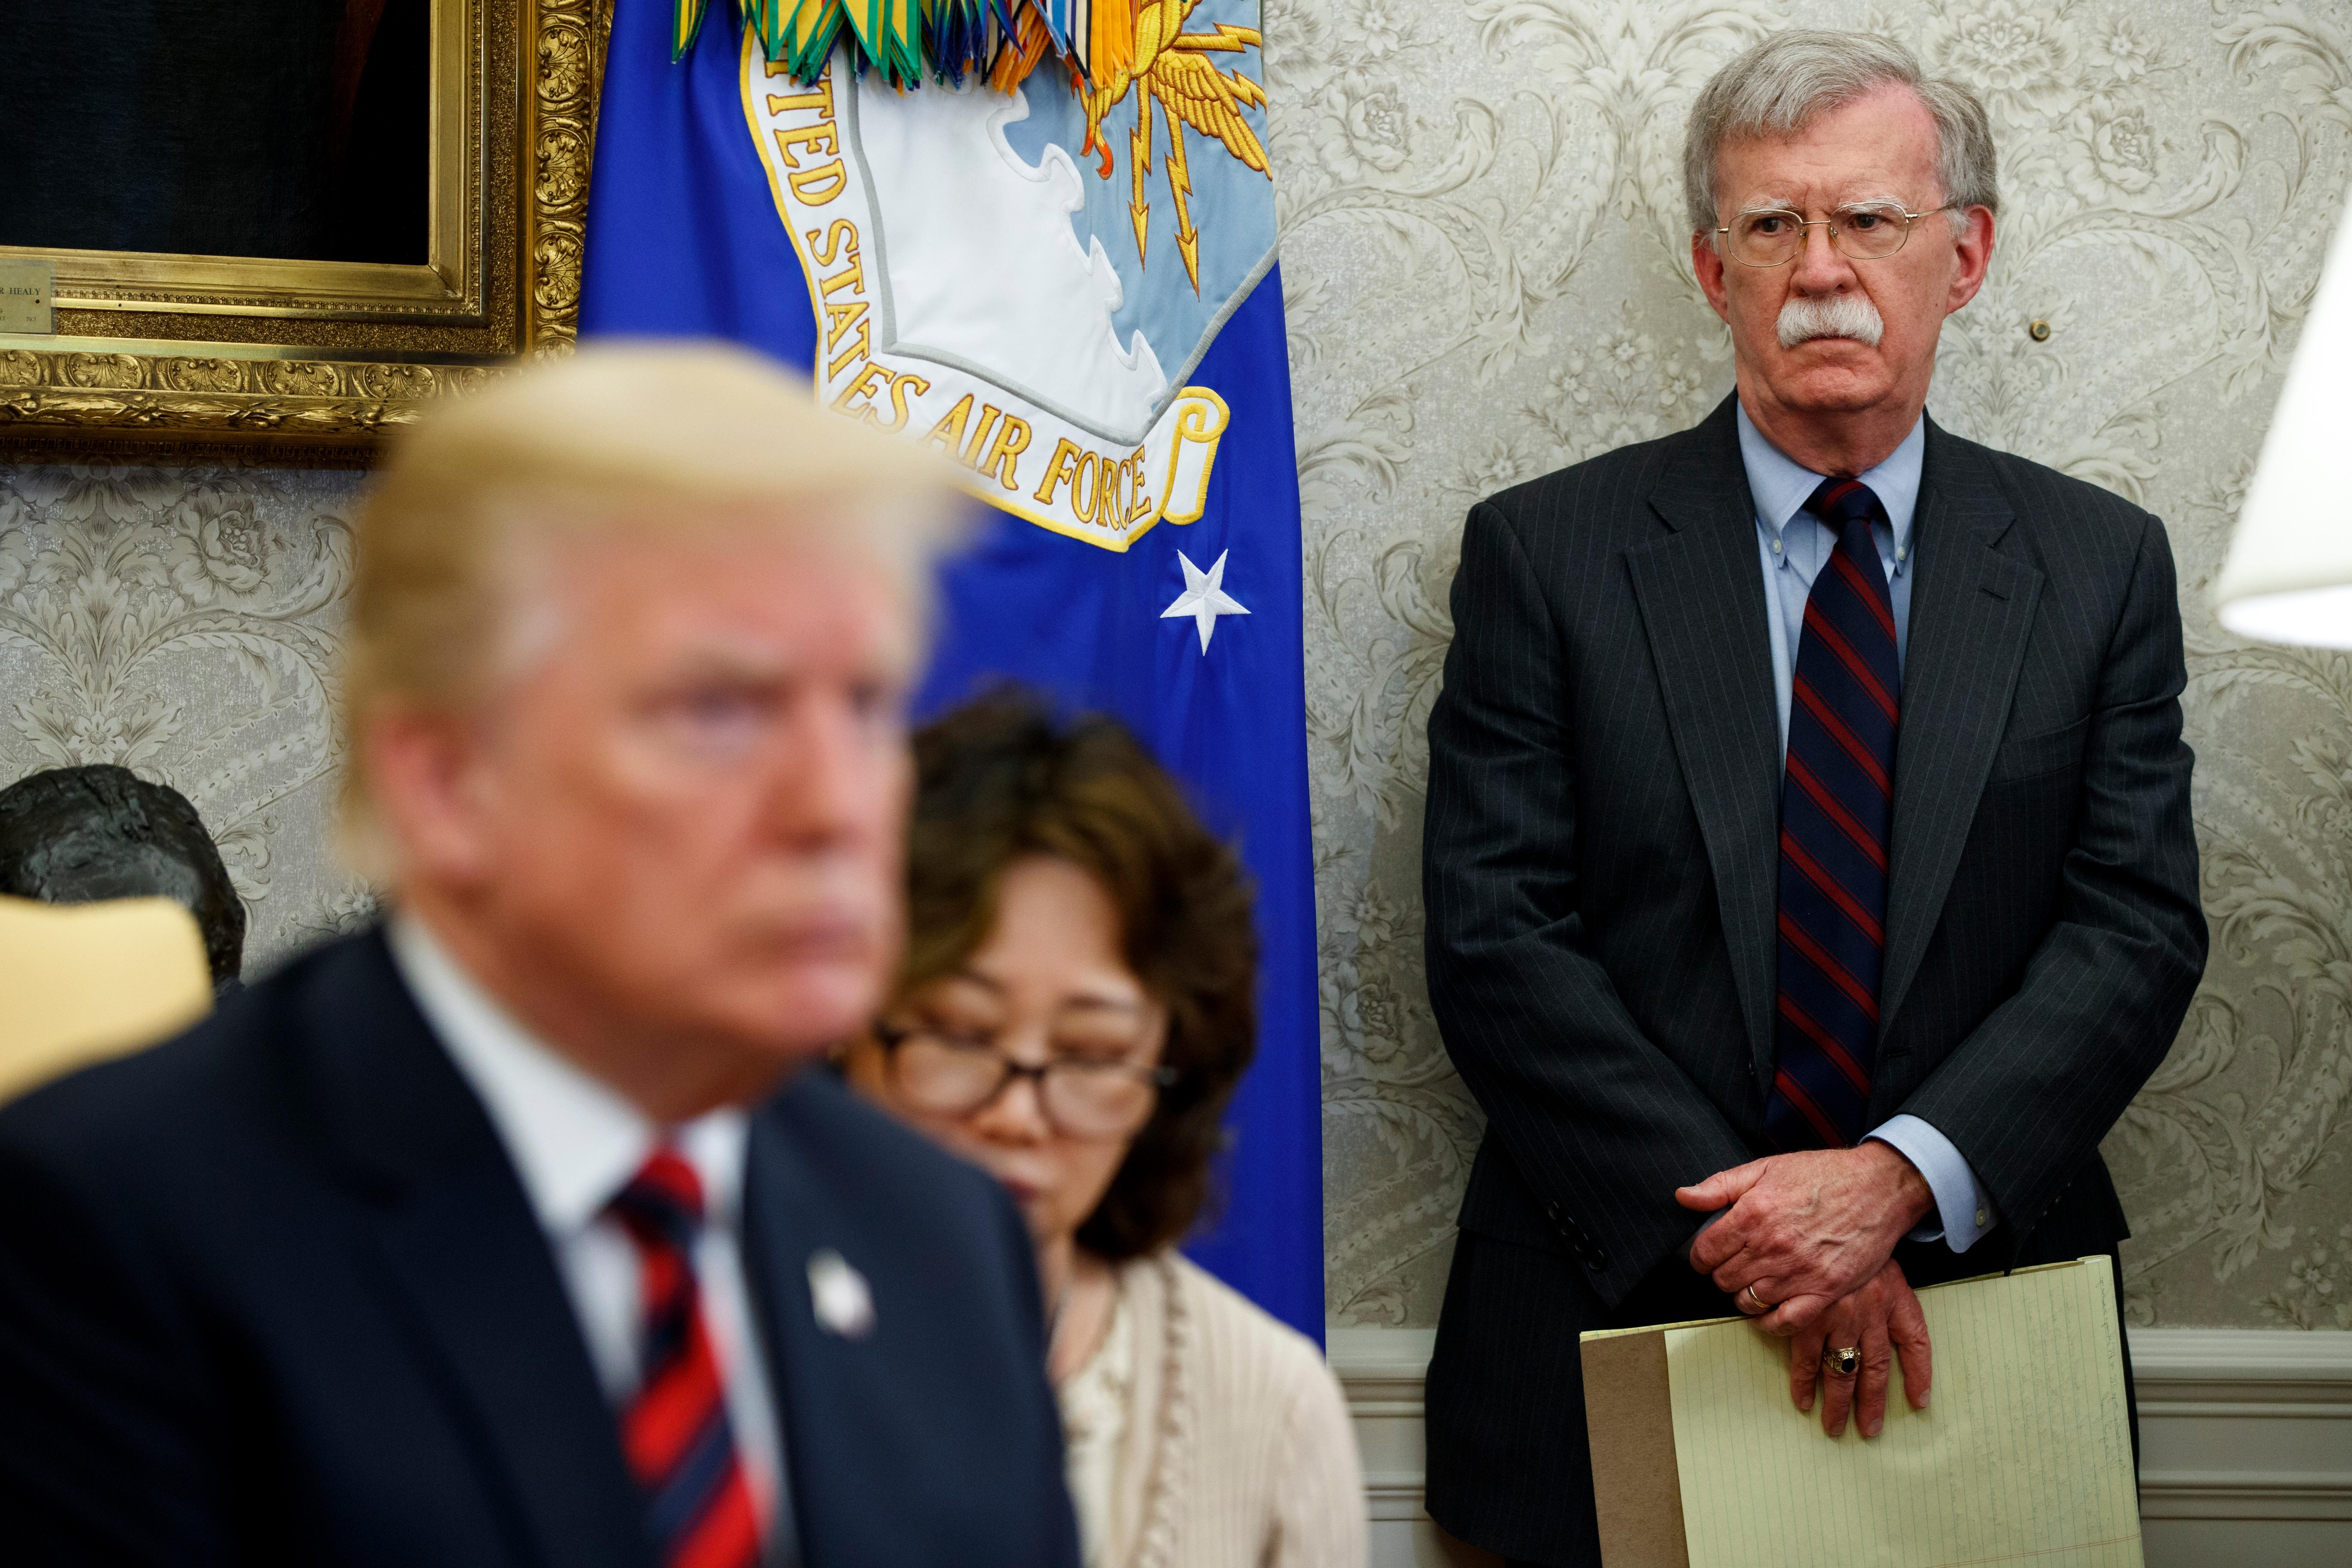 President Donald Trump meets with South Korean President Moon Jae-In in the Oval Office of the White House, Tuesday, May 22, 2018, in Washington, as national security adviser John Bolton watches. (AP Photo/Evan Vucci)